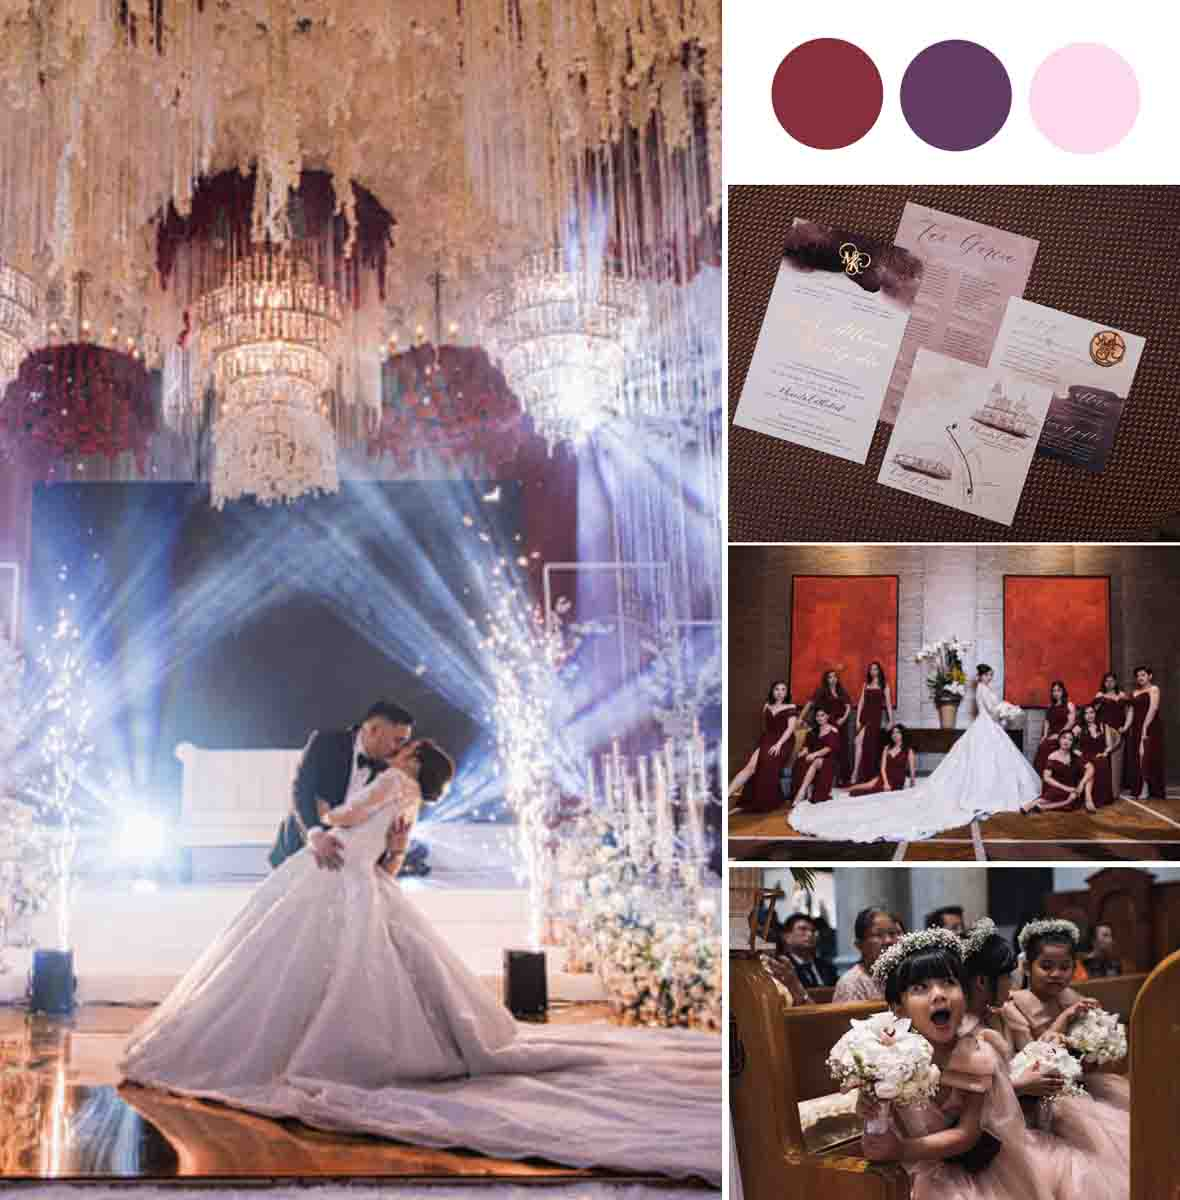 A Seriously Stunning Burgundy & Gold Wedding With A Gorgeous Chandelier Filled Ceiling [City of Dreams]